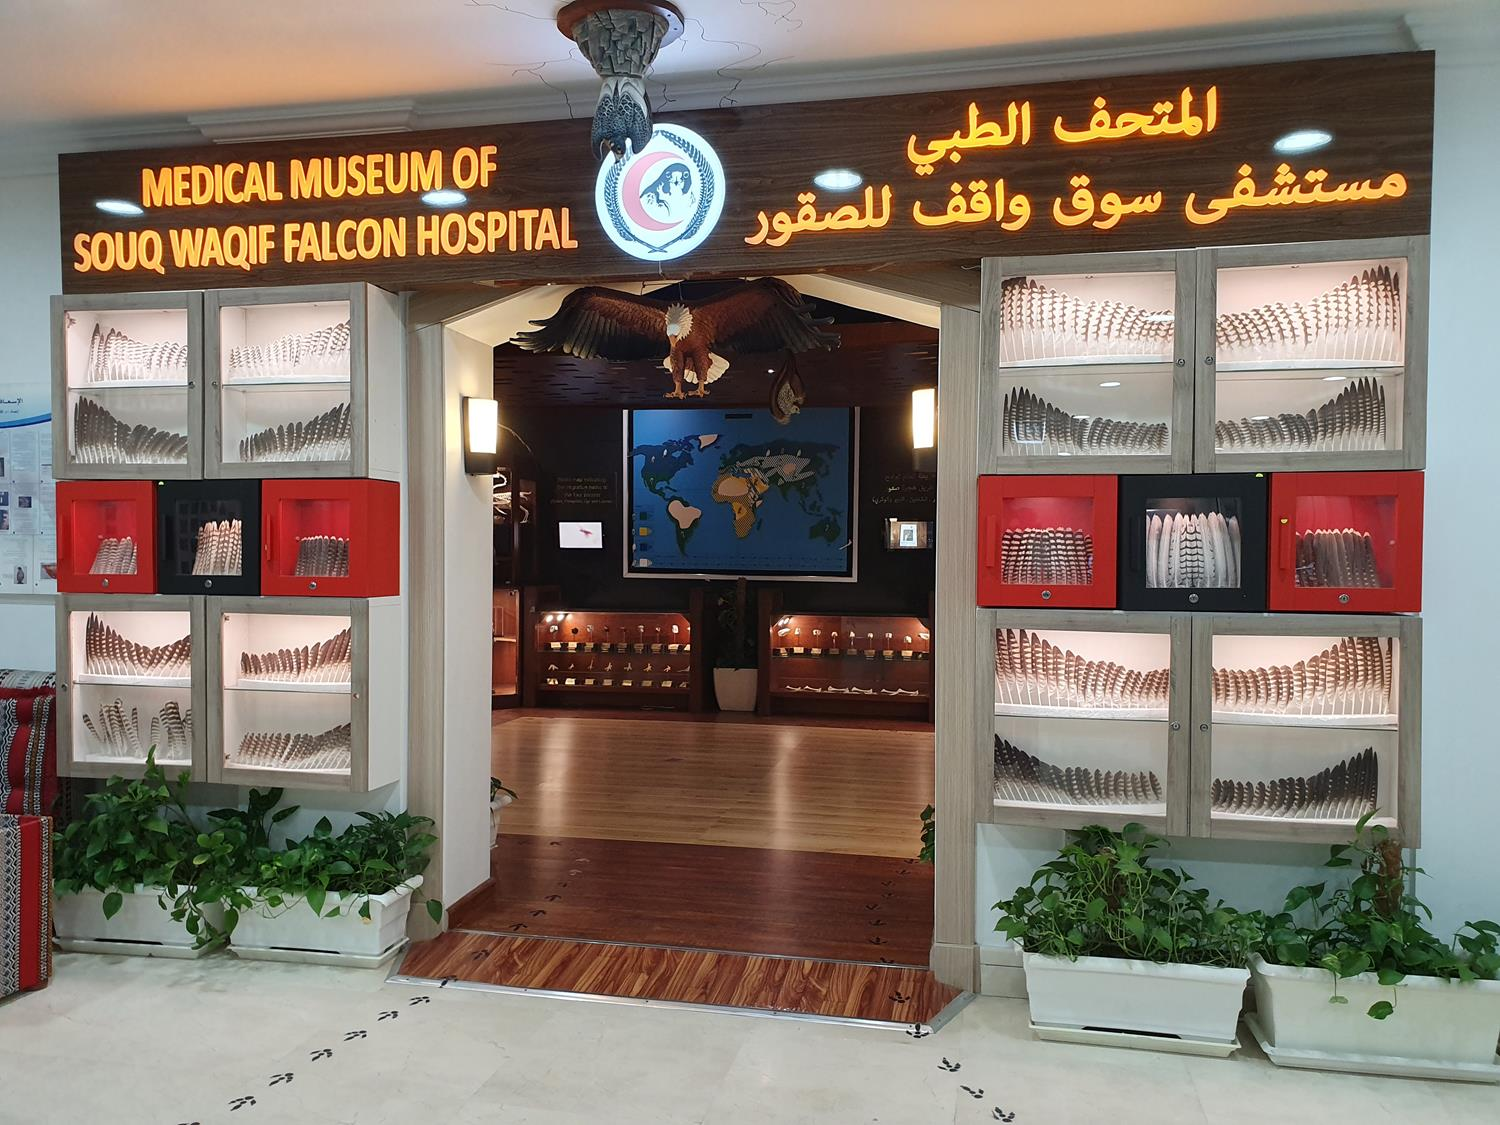 hospital de falcoes souk em Doha